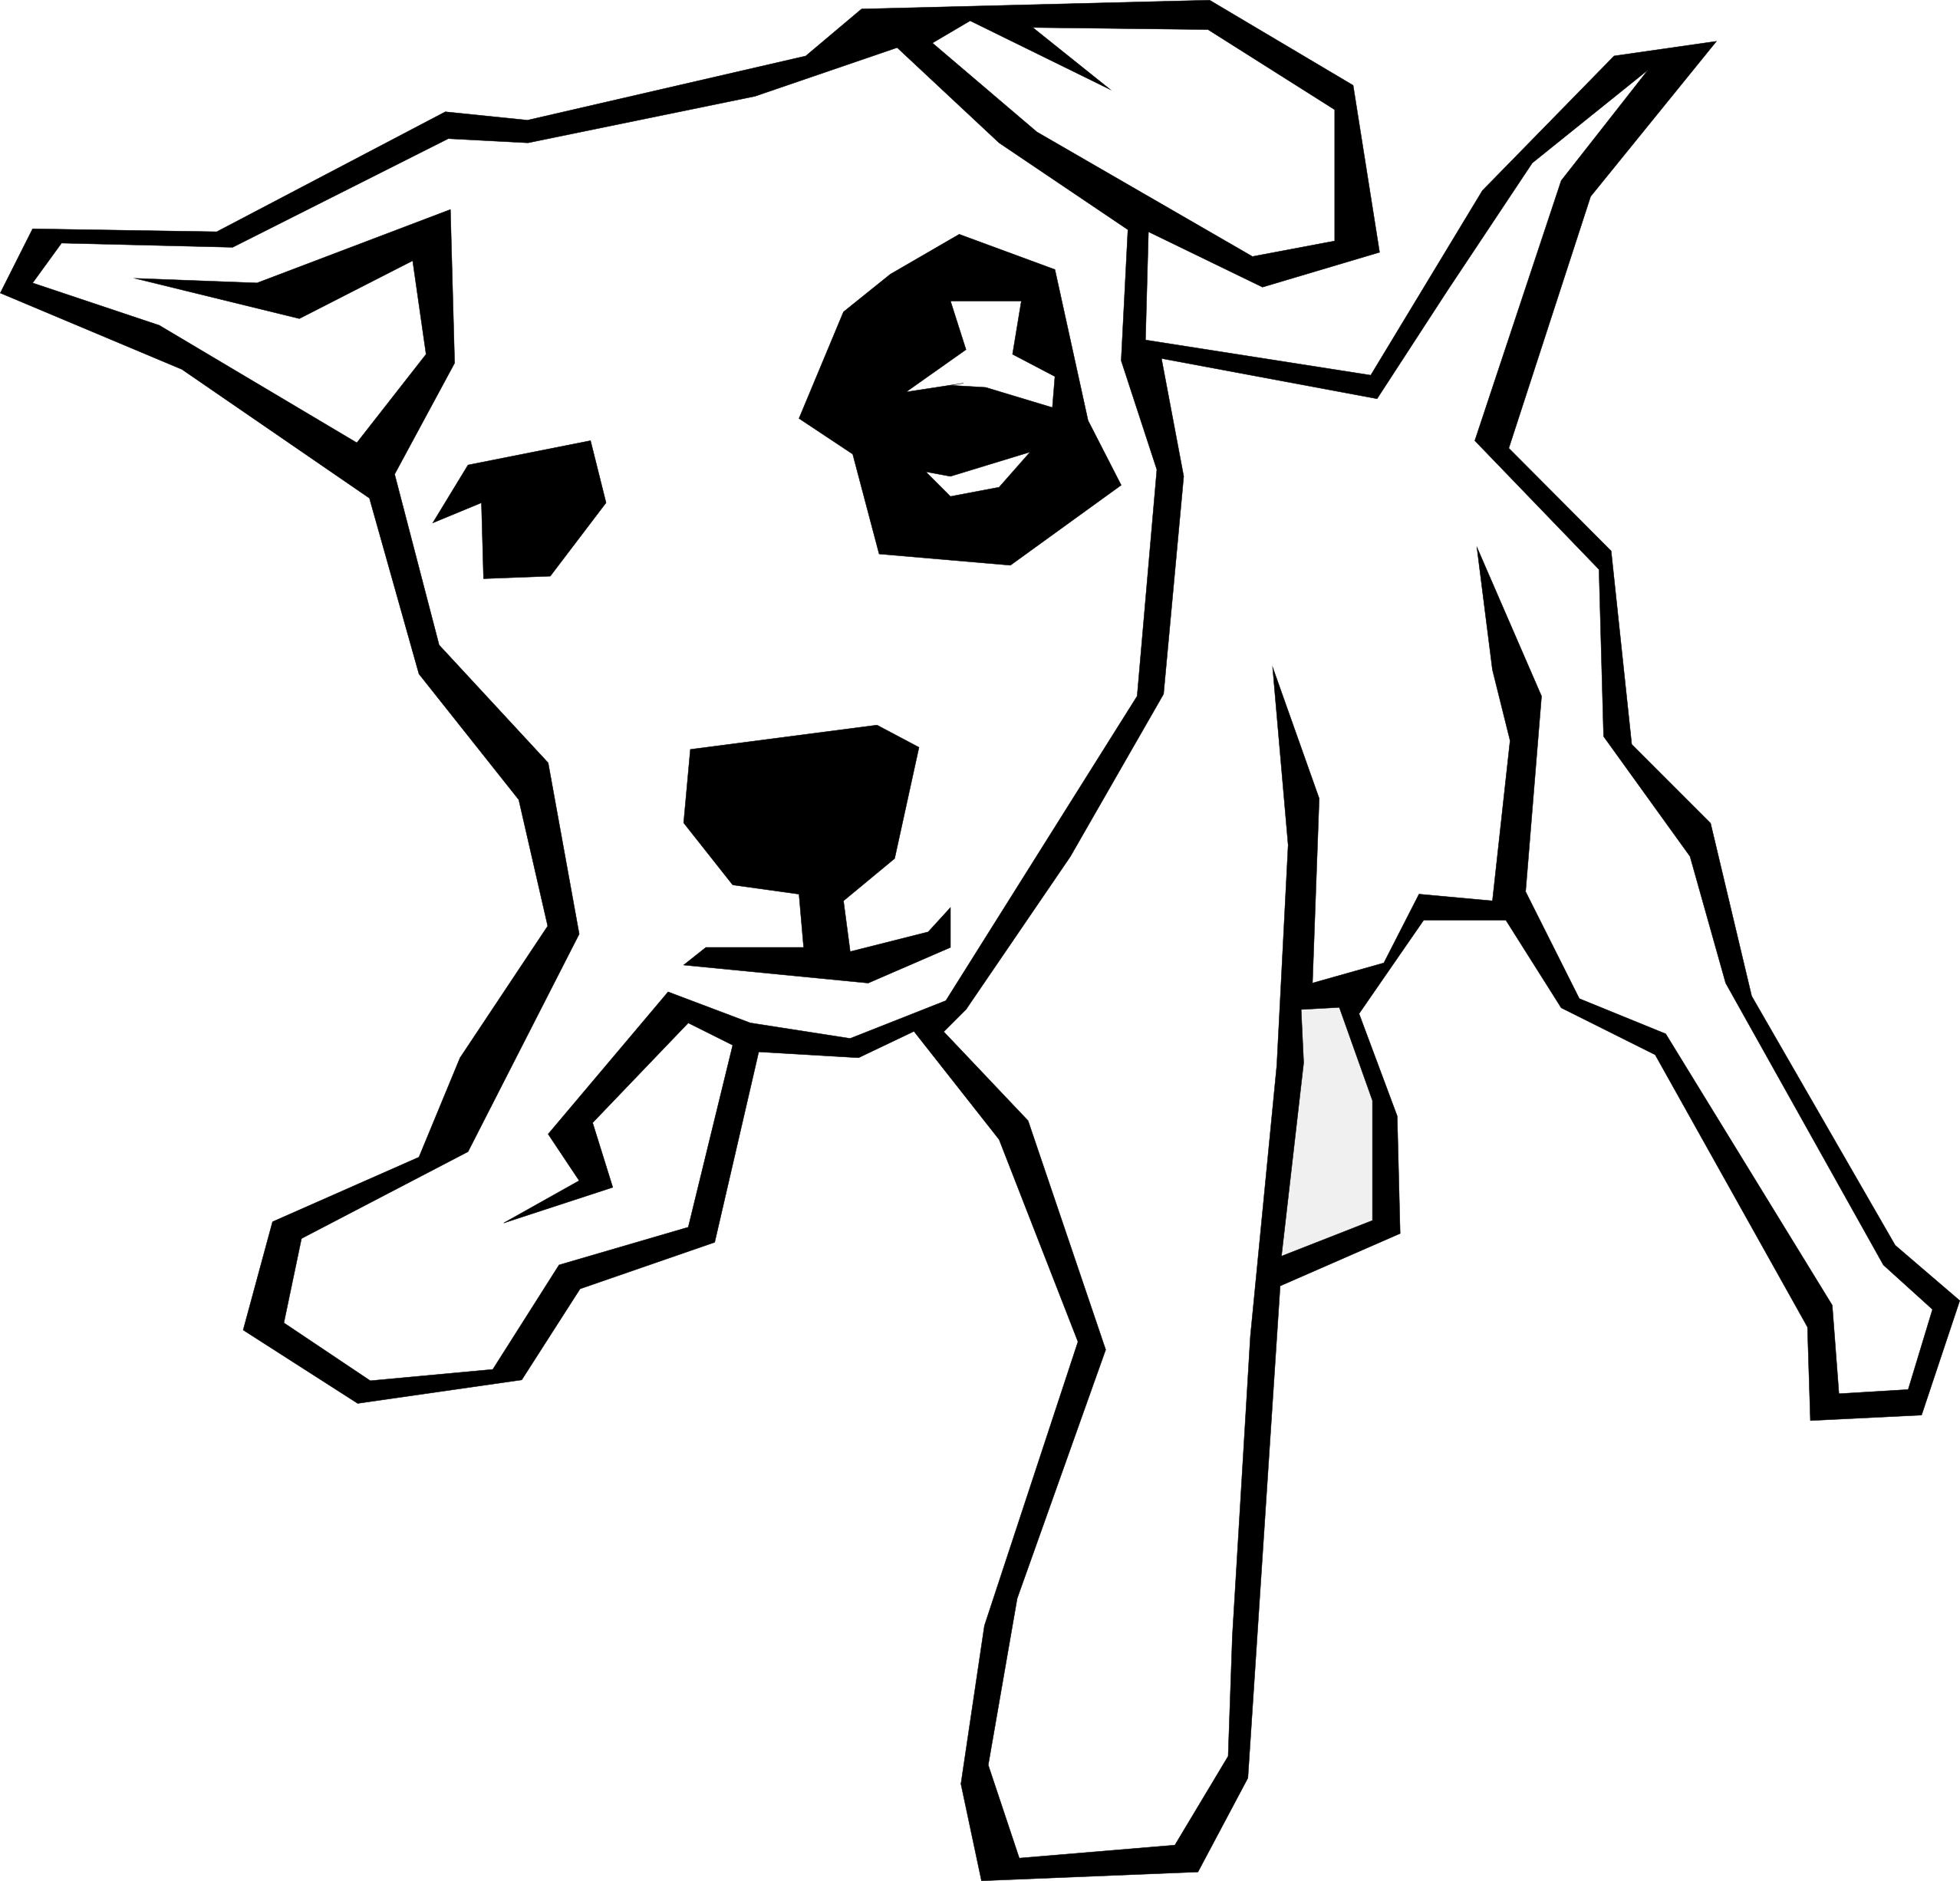 Halloween dog skeleton clipart vector transparent black and white drawings dog - Google Search | drawings | Pinterest ... vector transparent